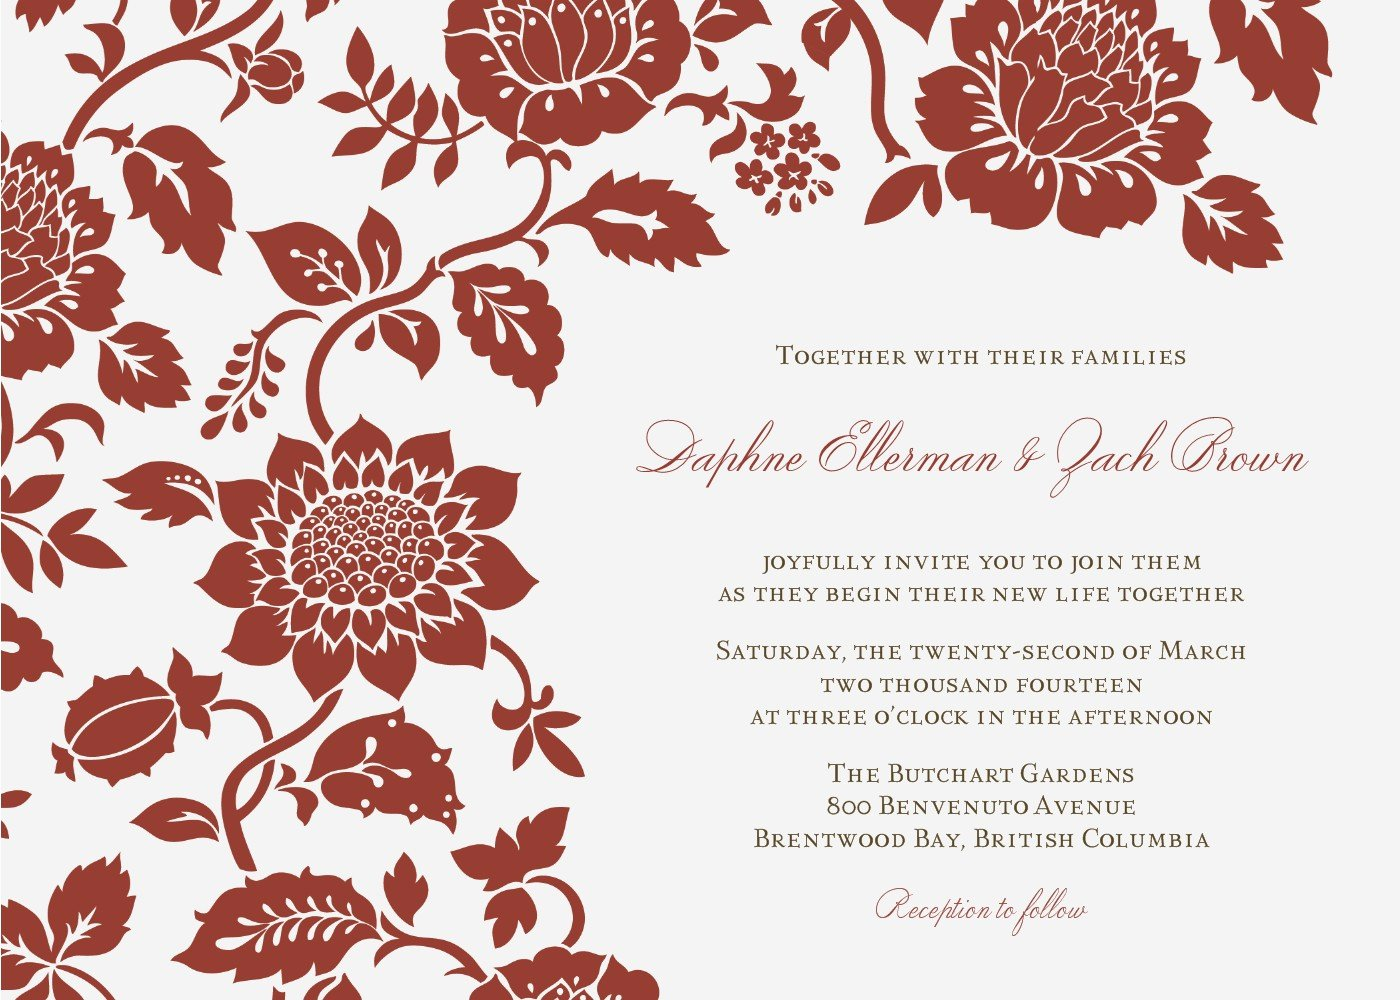 Email Wedding Invitation Template Elegant Wedding Invitation Wording Wedding Invitations Email Template